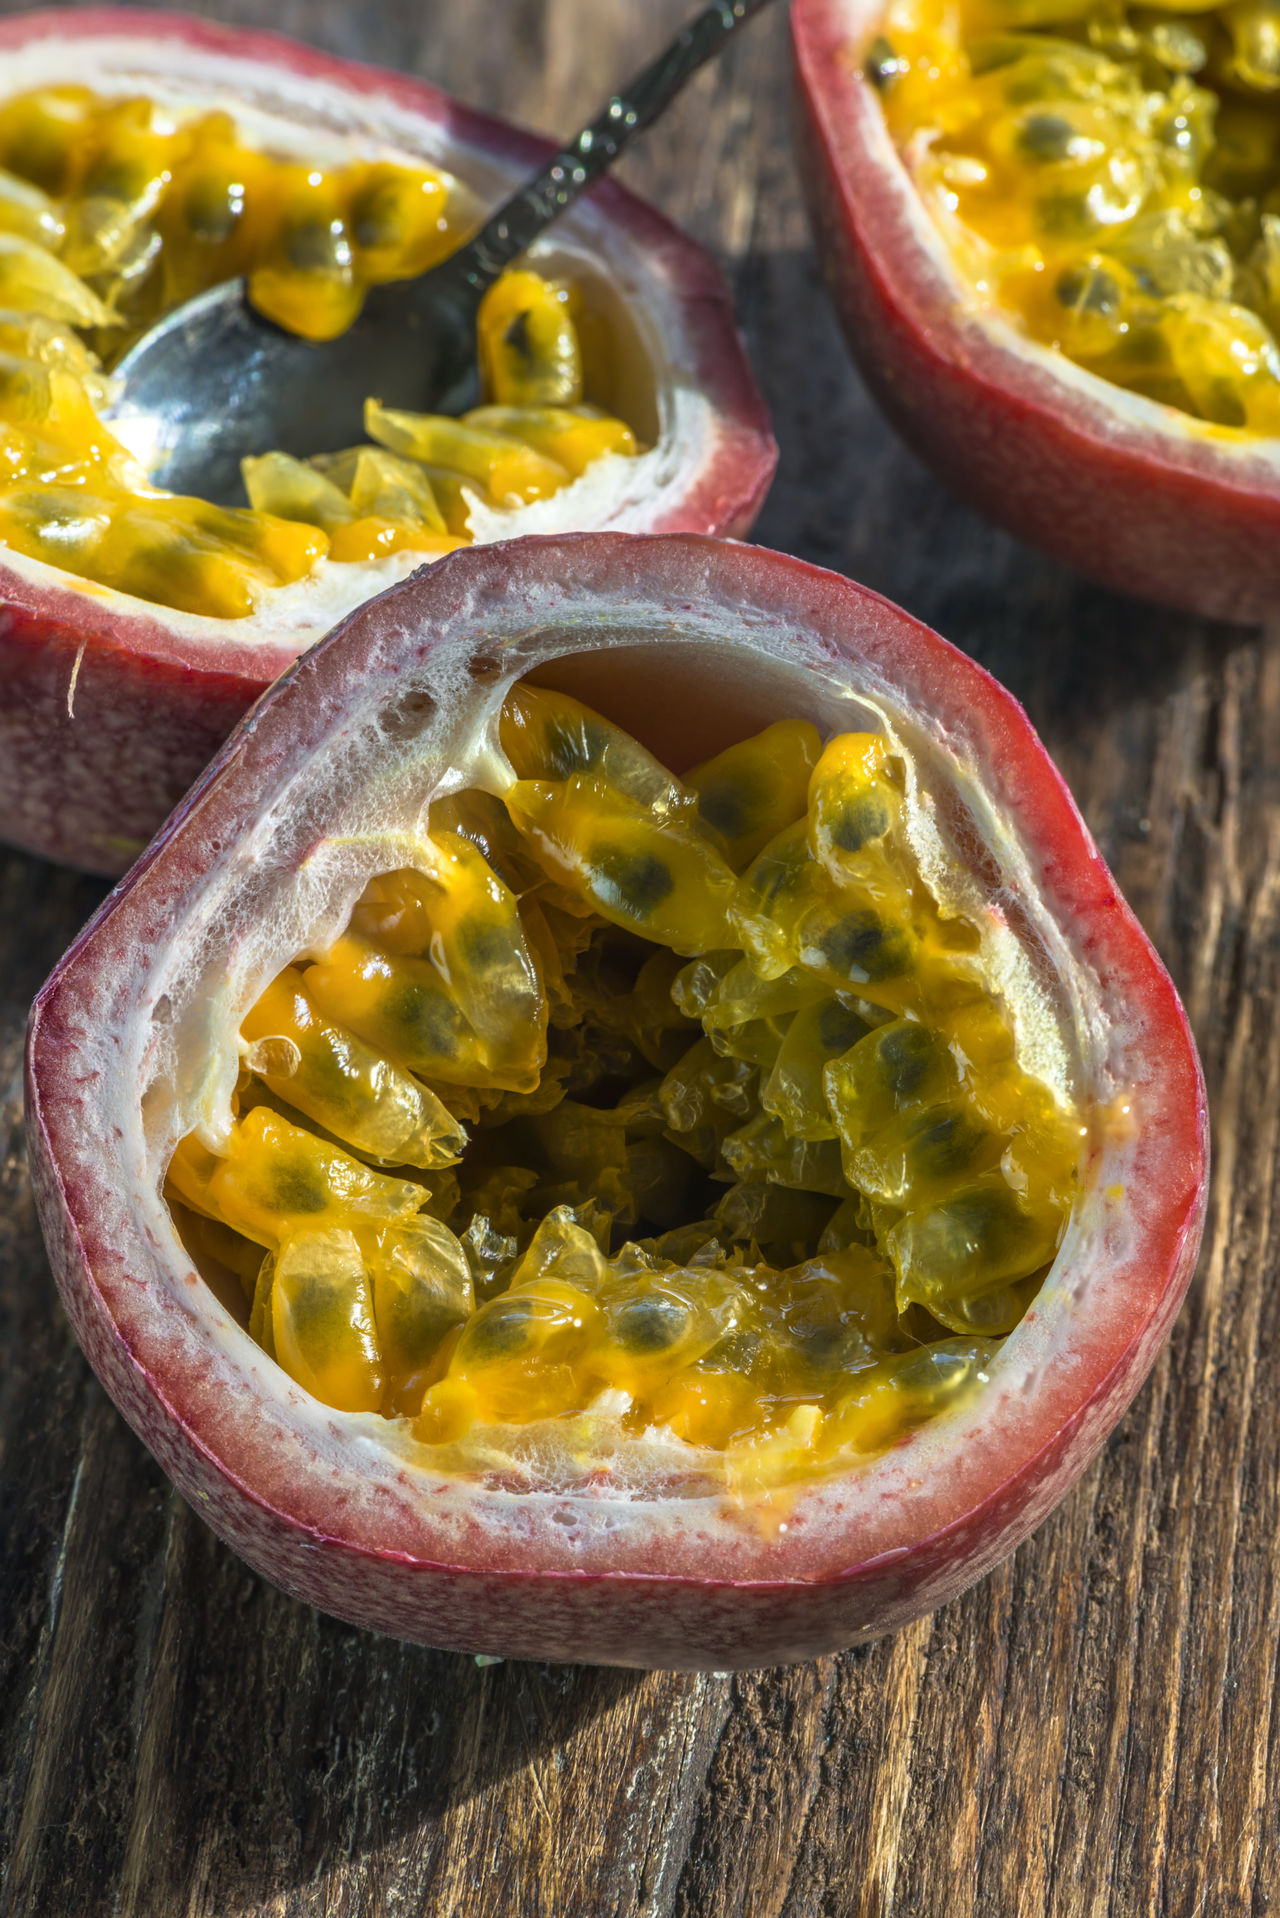 Closeup of passion fruit flesh Close Up Cut Day Exotic Fruits First Eyeem Photo Freshness Halved Halves Healthy Eating Indoors  Inside Mammal No People Passion Fruit Pula Seeds Spooky